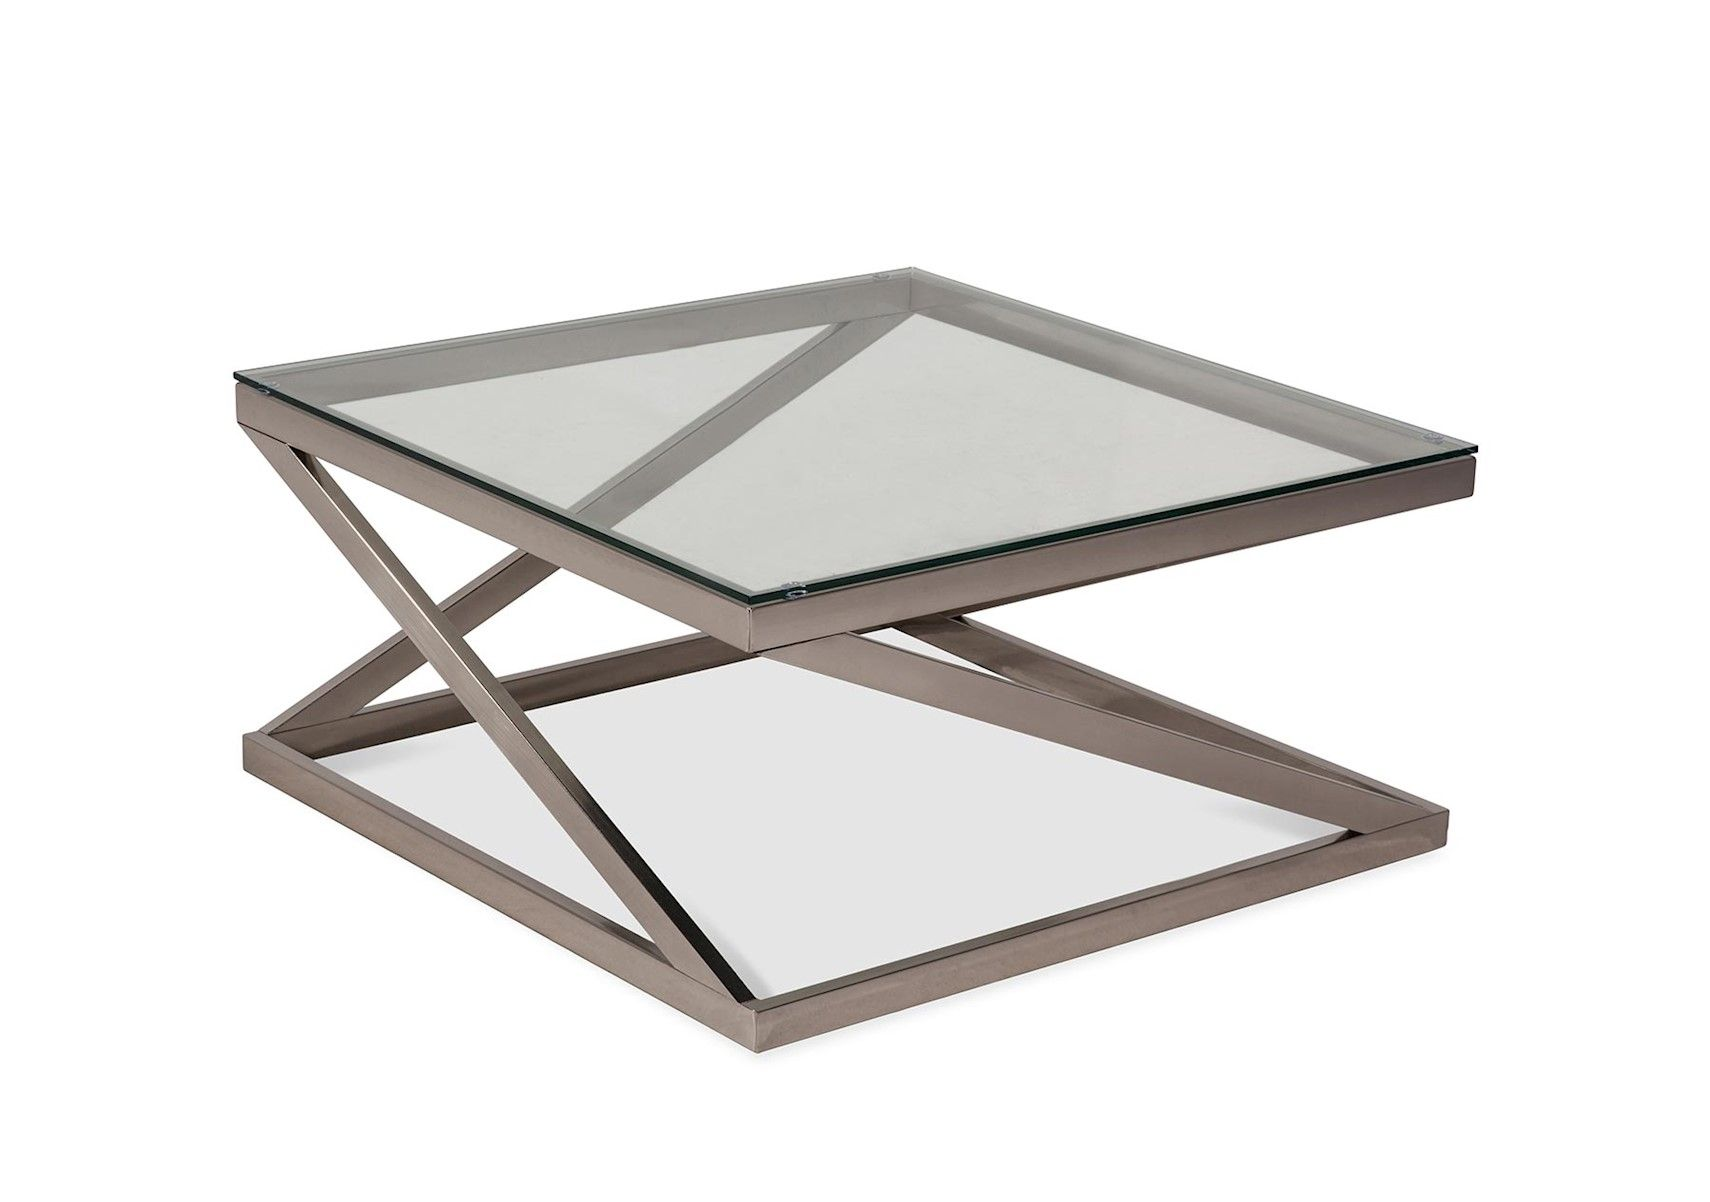 Lacks Coylin Coffee Table Glass End Tables End Tables Coffee Table Square [ 1202 x 1710 Pixel ]